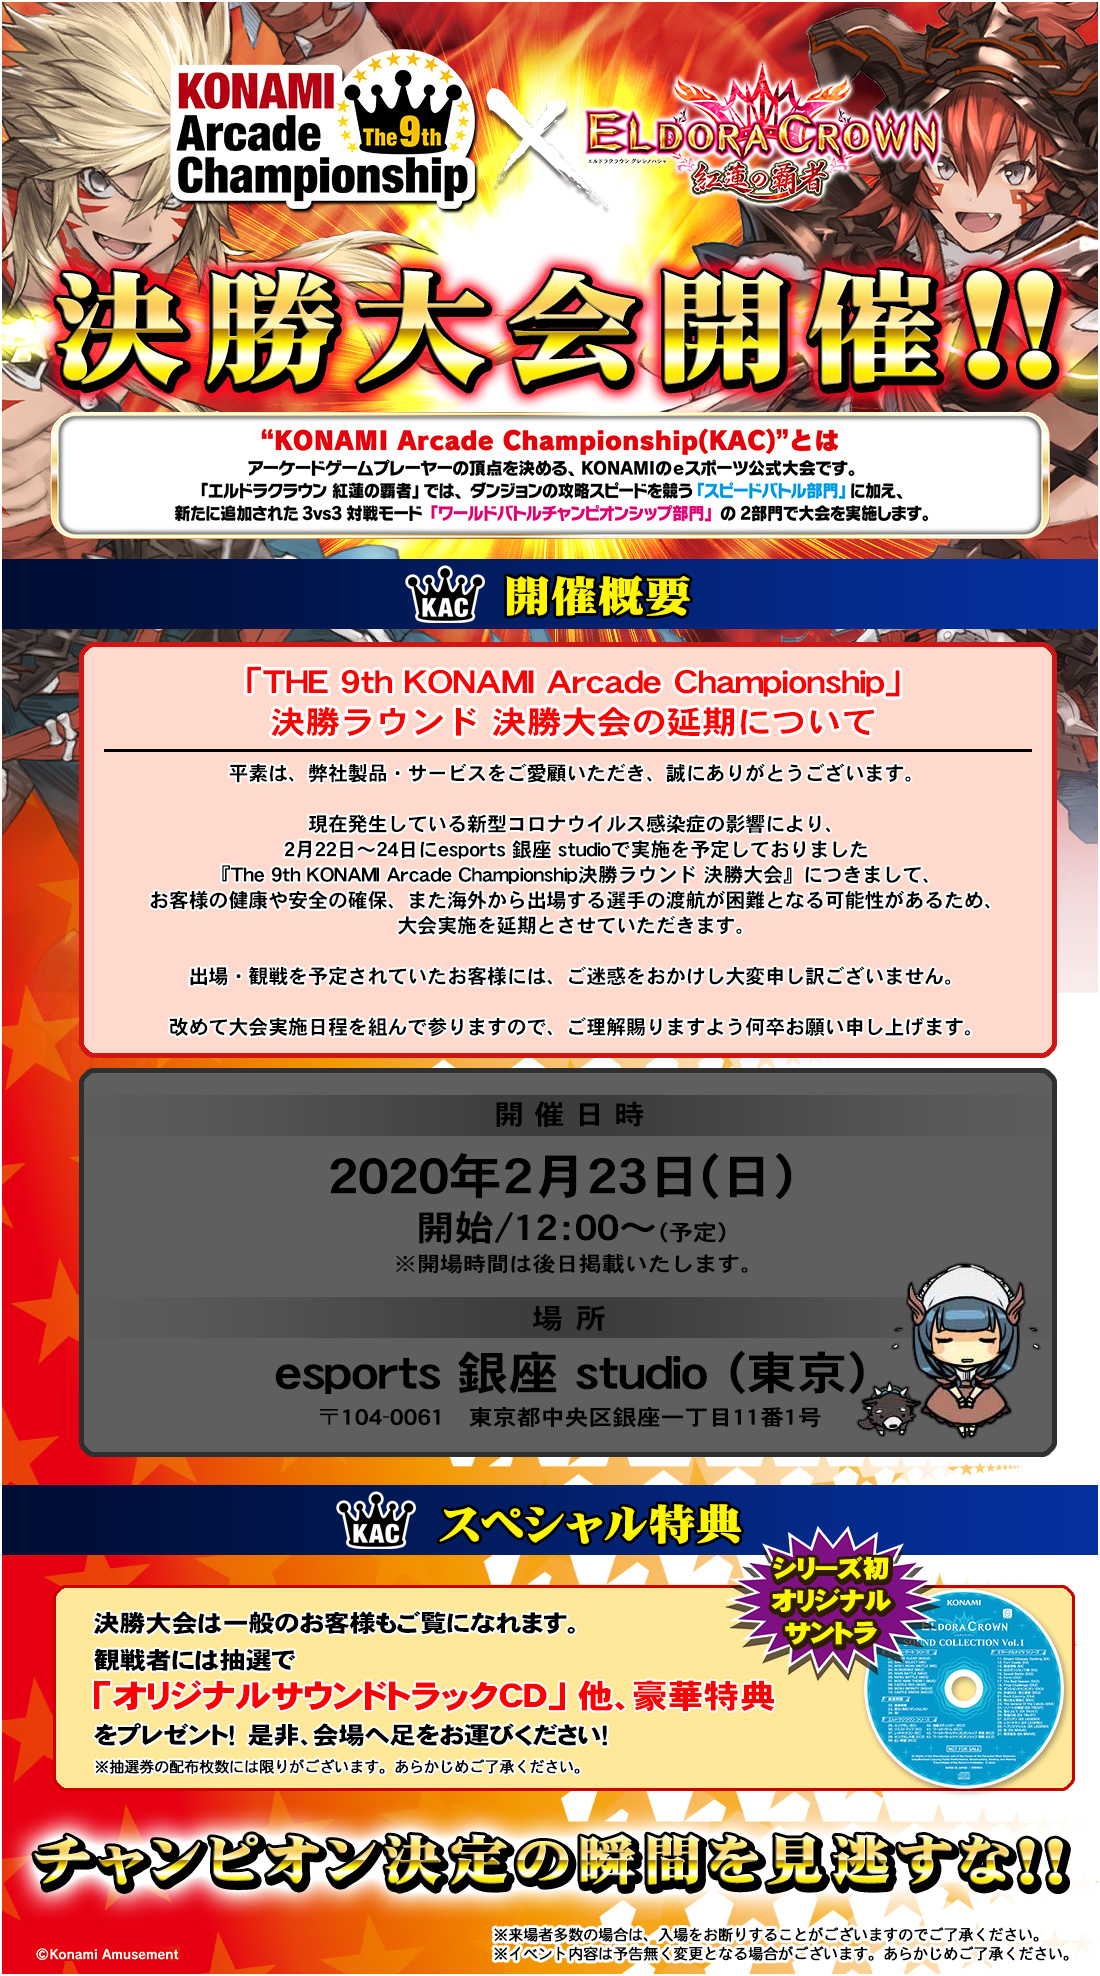 「The 9th KONAMI Arcade Championship」決勝ラウンド開催!